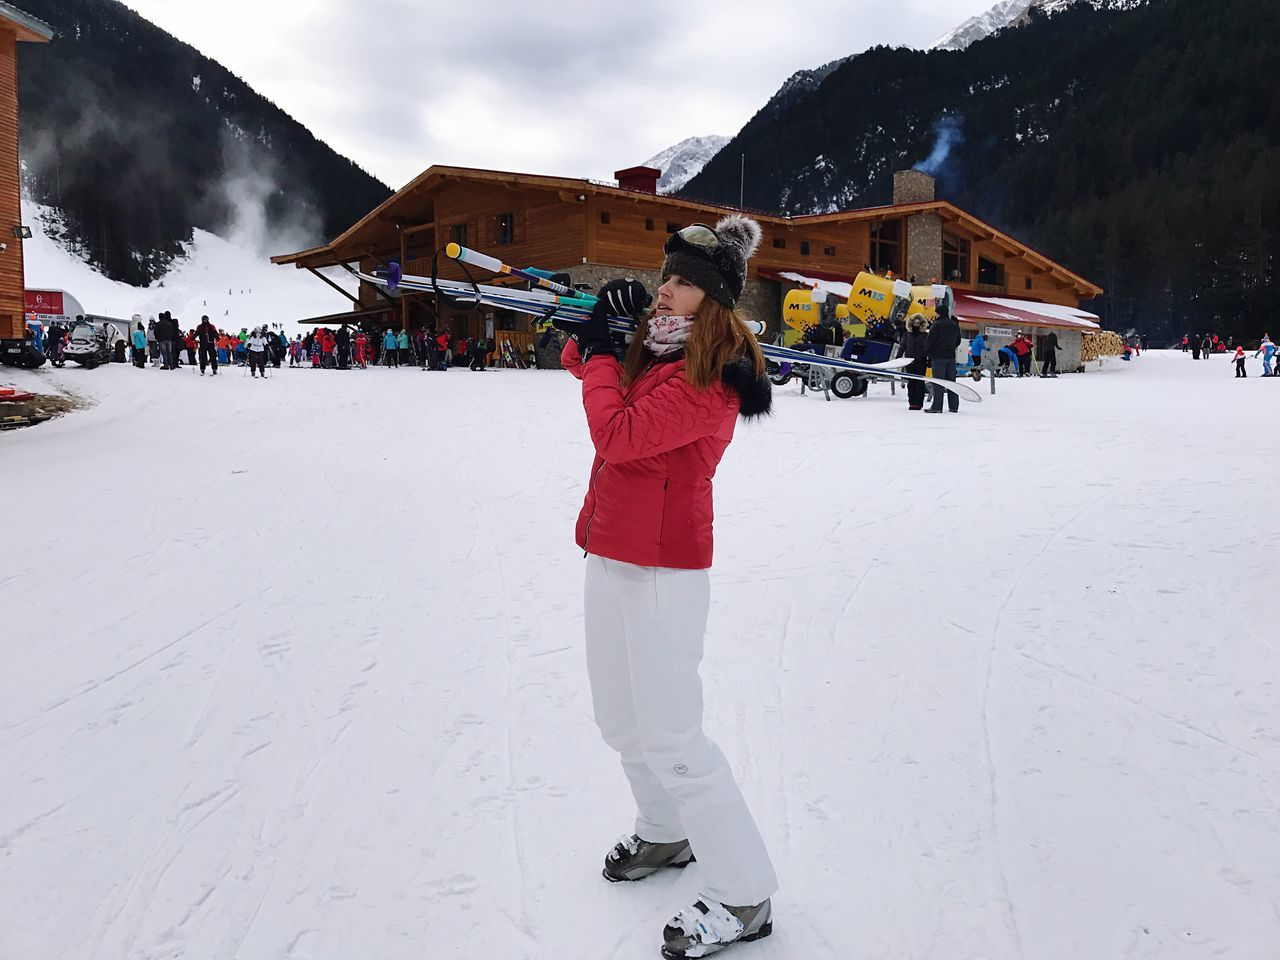 Woman Holding Ski Skiing Real People Winter Snow Lifestyles Cold Temperature Leisure Activity Sky Weather Rear View Outdoors Warm Clothing One Person Day Nature Full Length Women Building Exterior Architecture Mountain Men